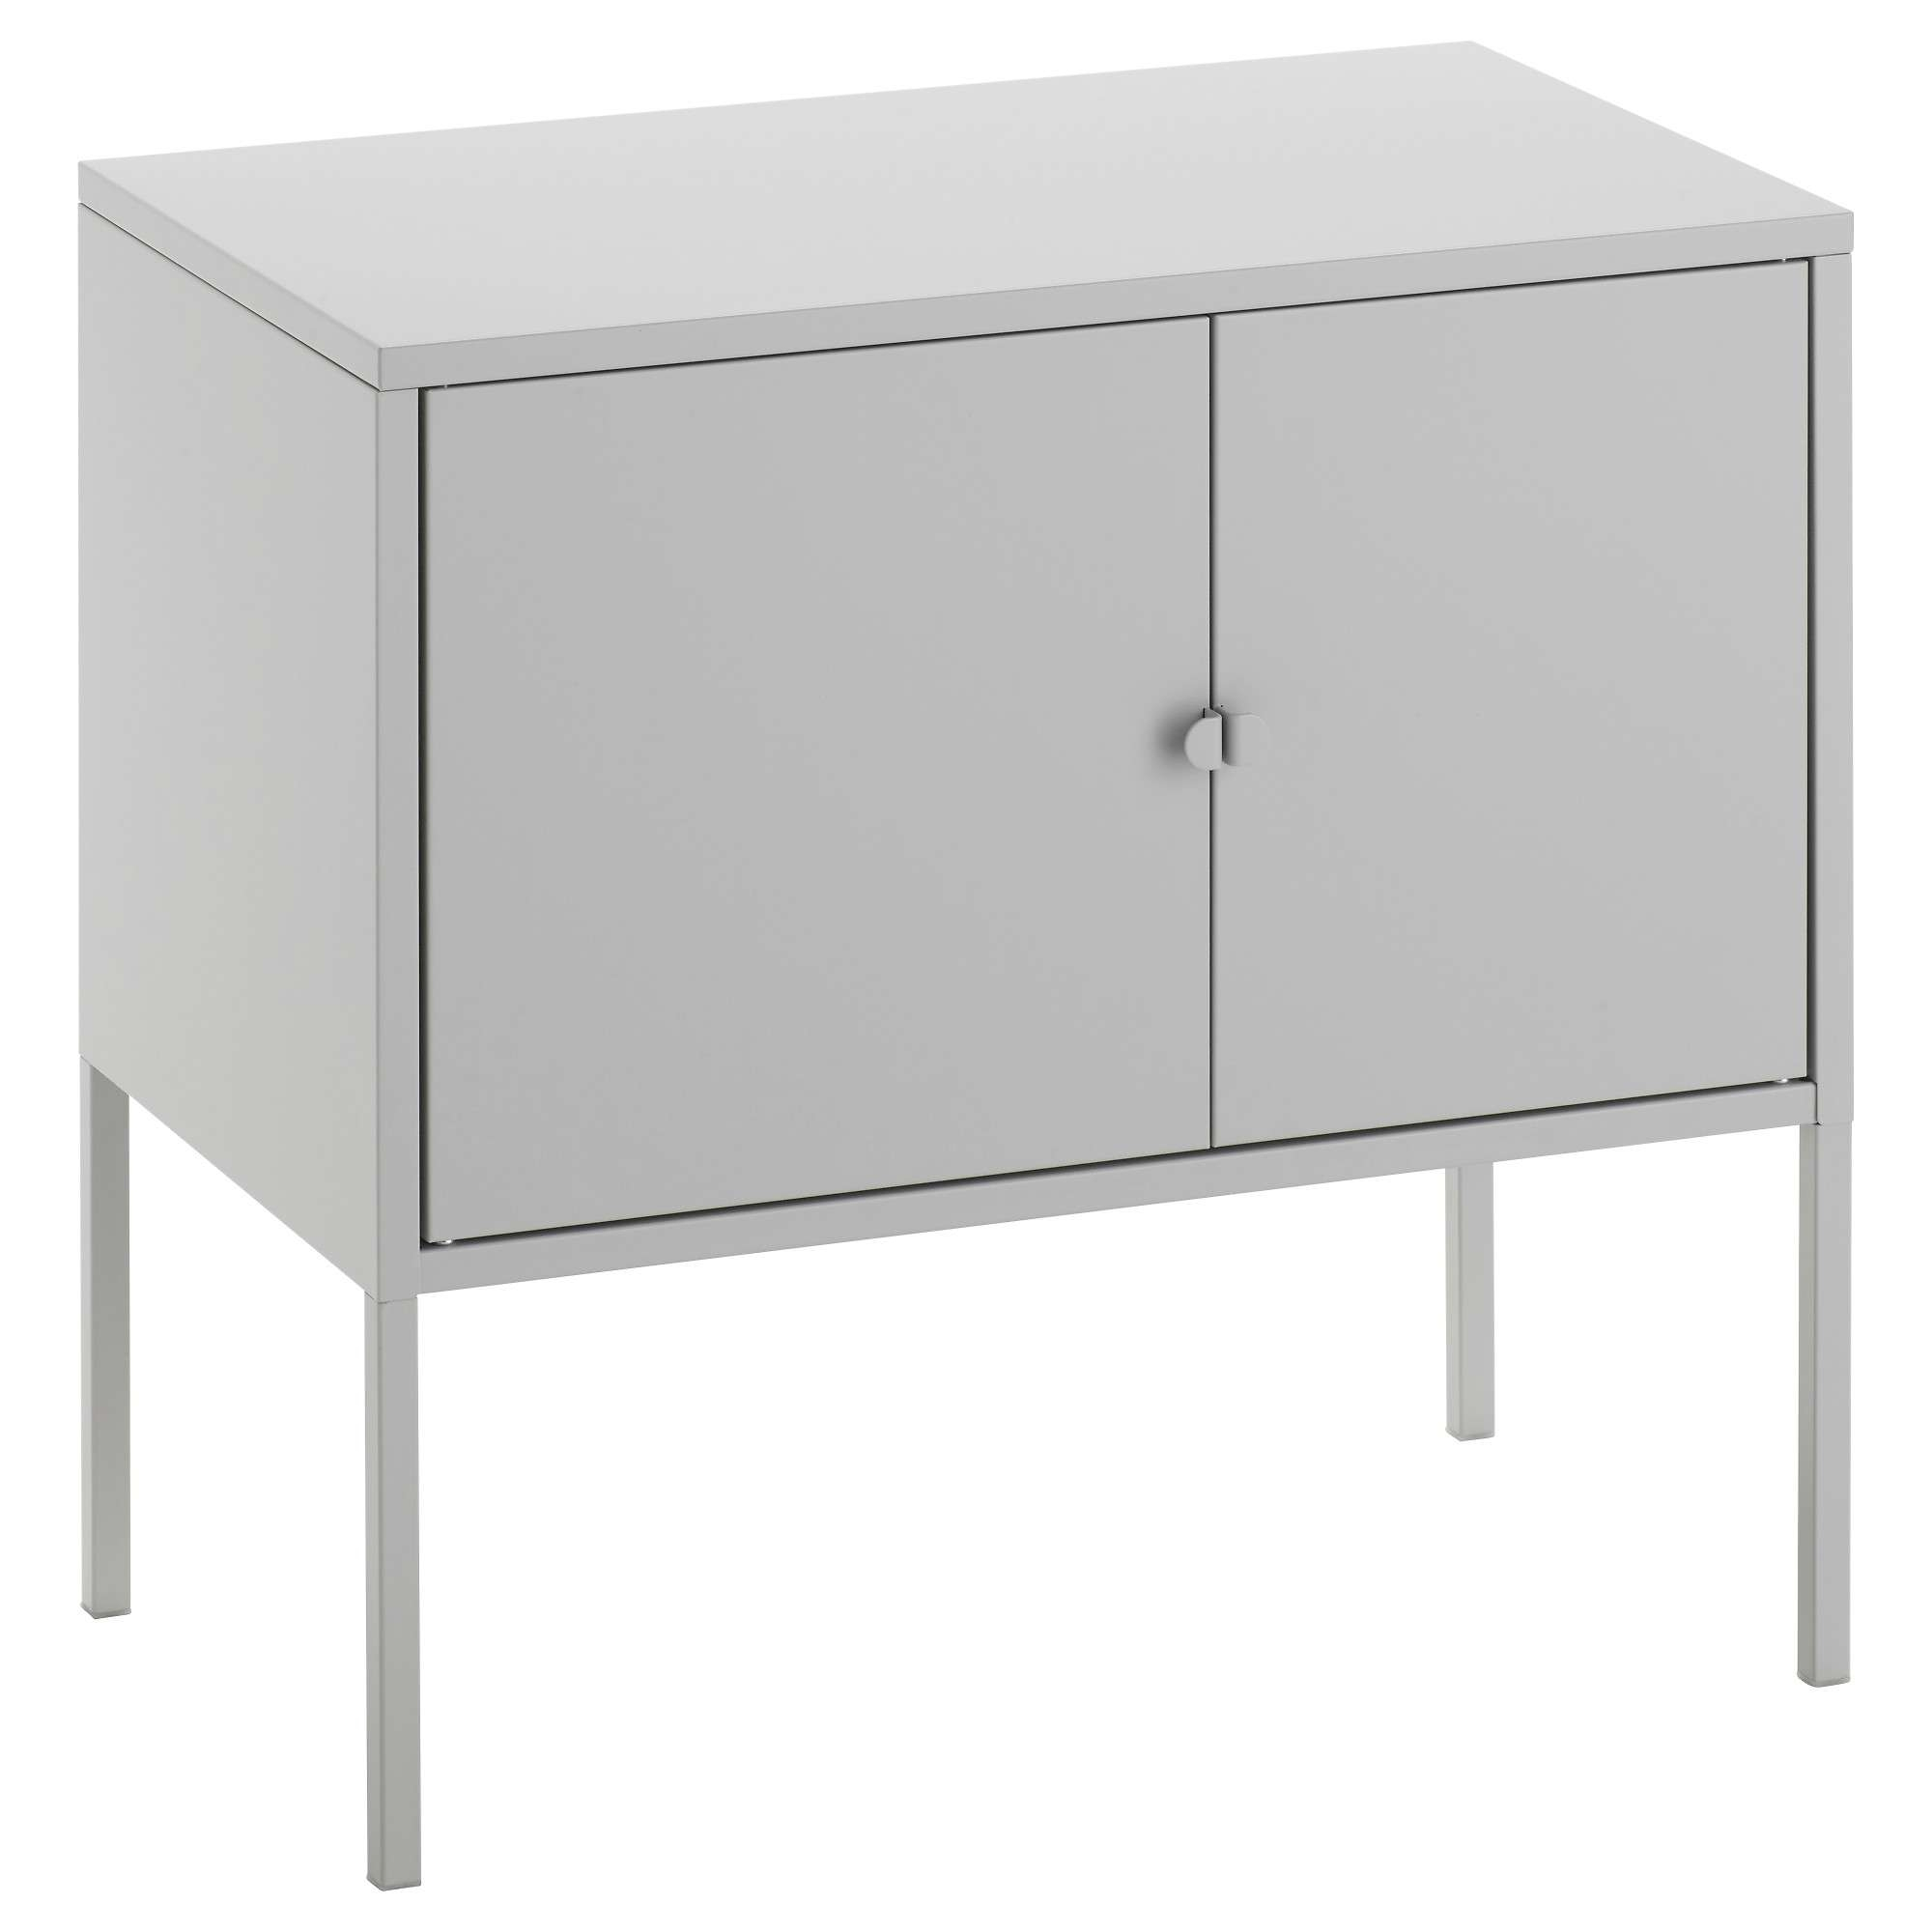 Cabinets & Sideboards – Ikea Pertaining To Deep Sideboards (View 18 of 20)